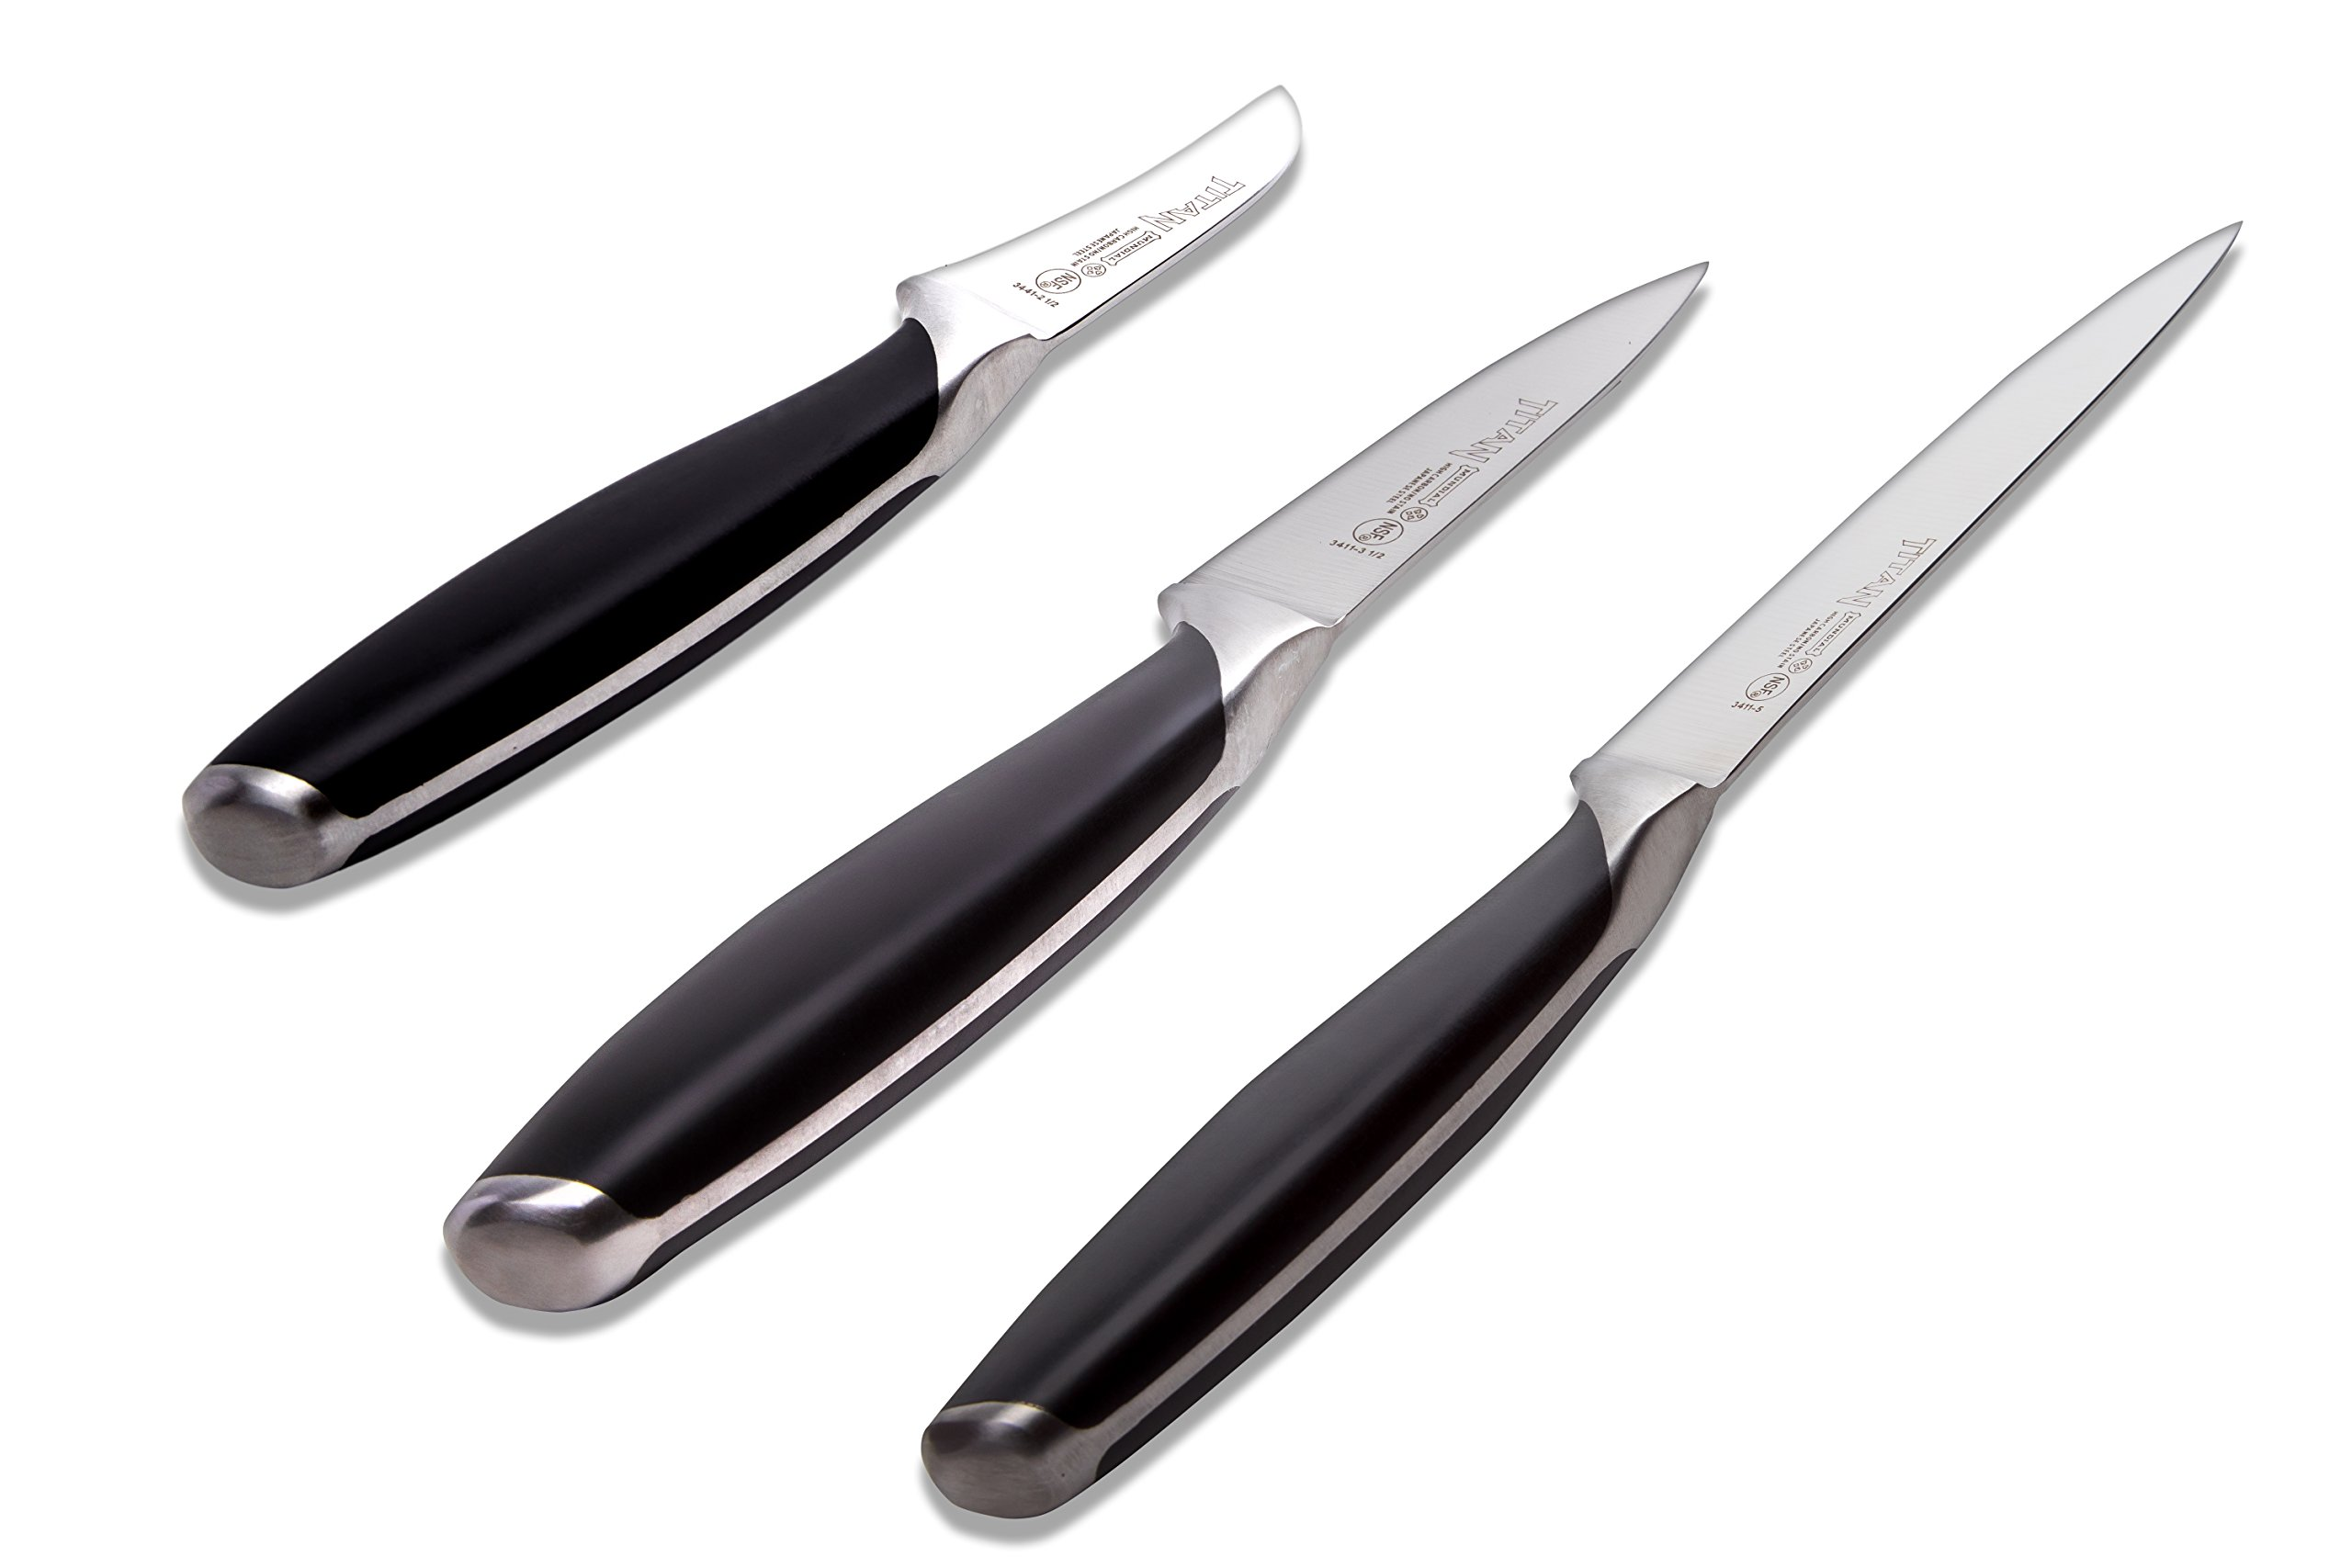 Mundial Titan Series 3 Pieces Knives Set, Black Handle, 3.5 in. Paring, 5 in. Utility and 2.5 in. Peeling Knives by Mundial (Image #2)